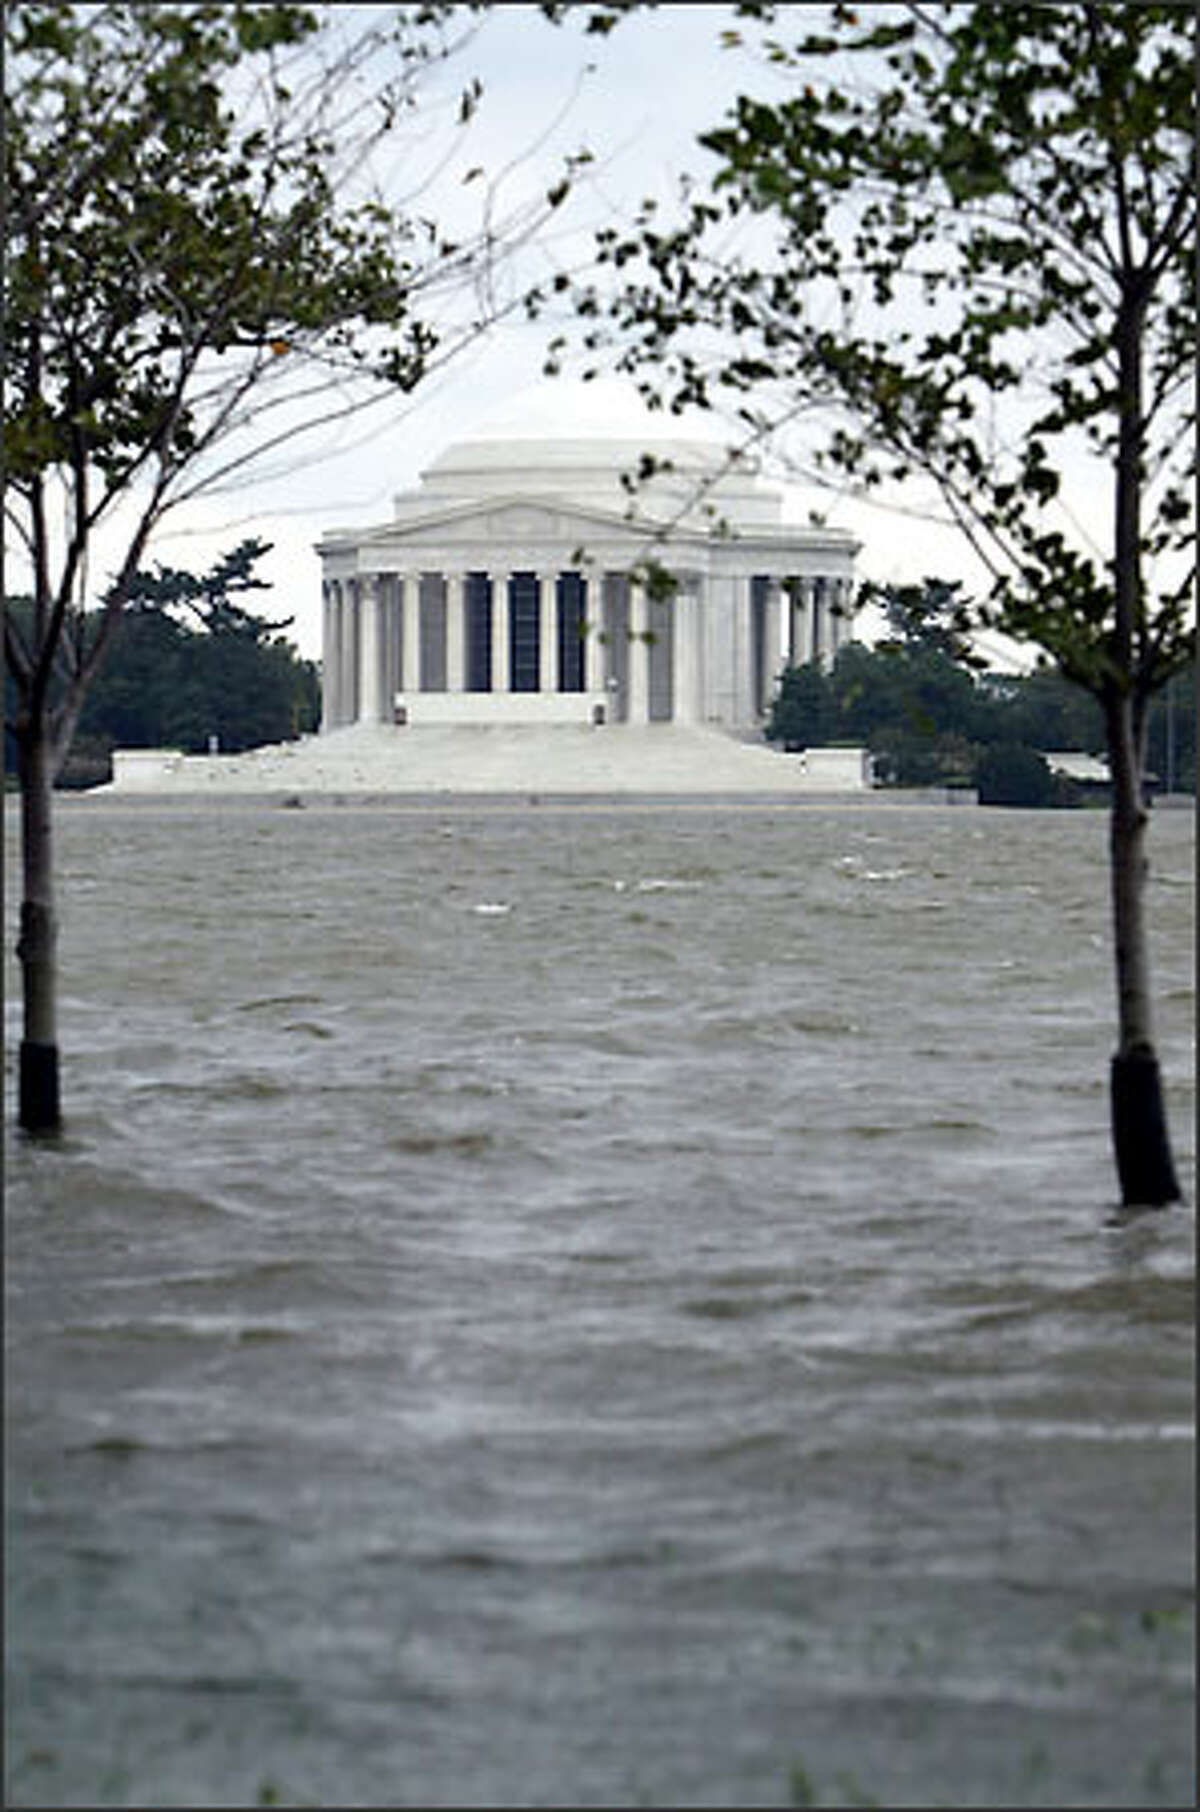 The overflowing Tidal Basin, across from the Jefferson Memorial, in Washington, D.C., in the aftermath of Hurricane Isabel. Thousands of residents were without lights, hundreds of trees littered the landscape, and all three branches of government were basically shut down. (AP Photo/Evan Vucci)